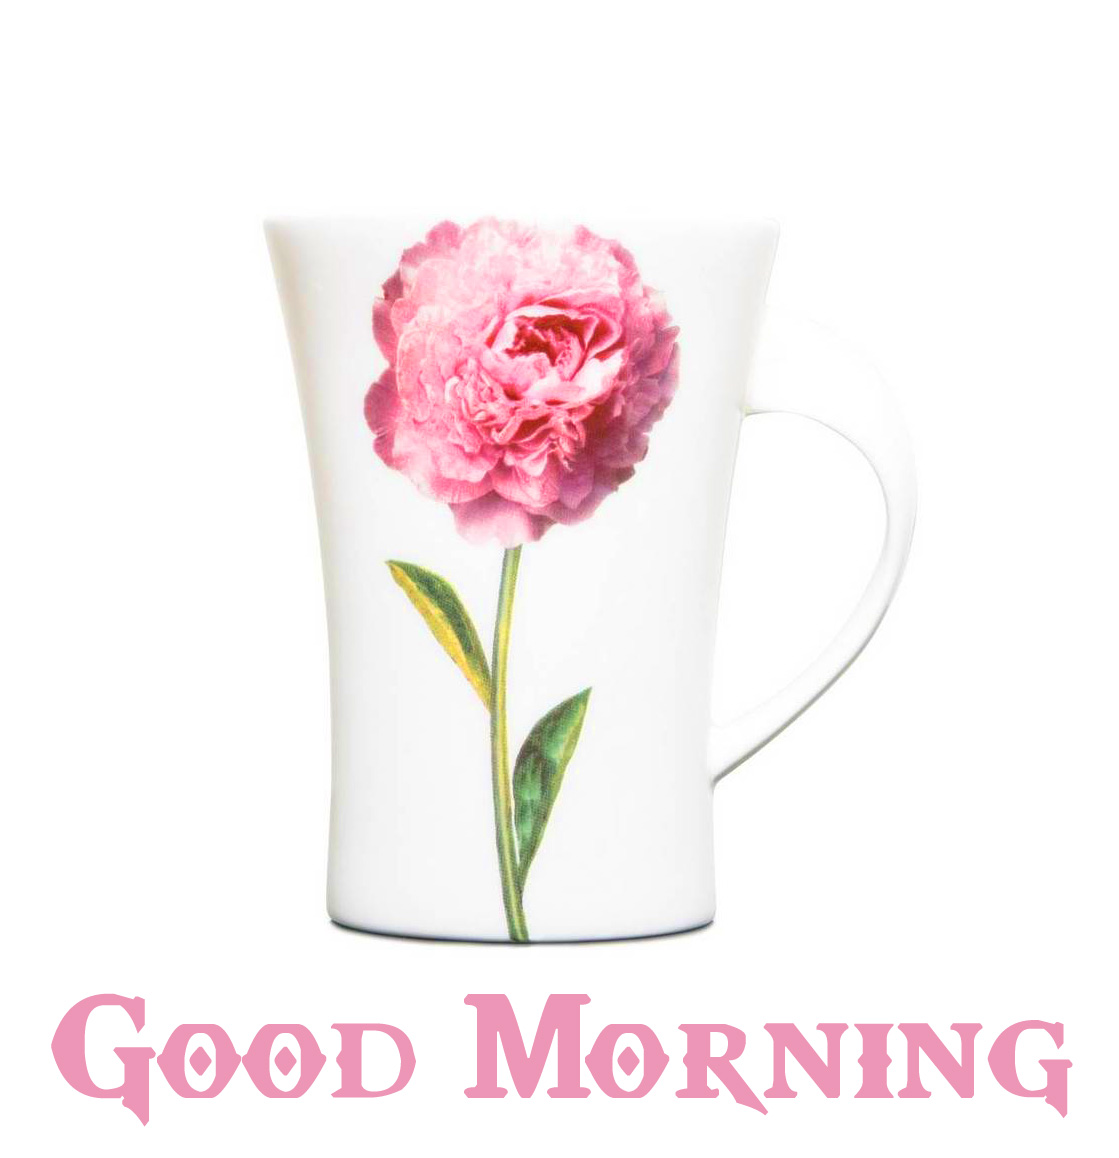 Good Morning Flower Mug Pic